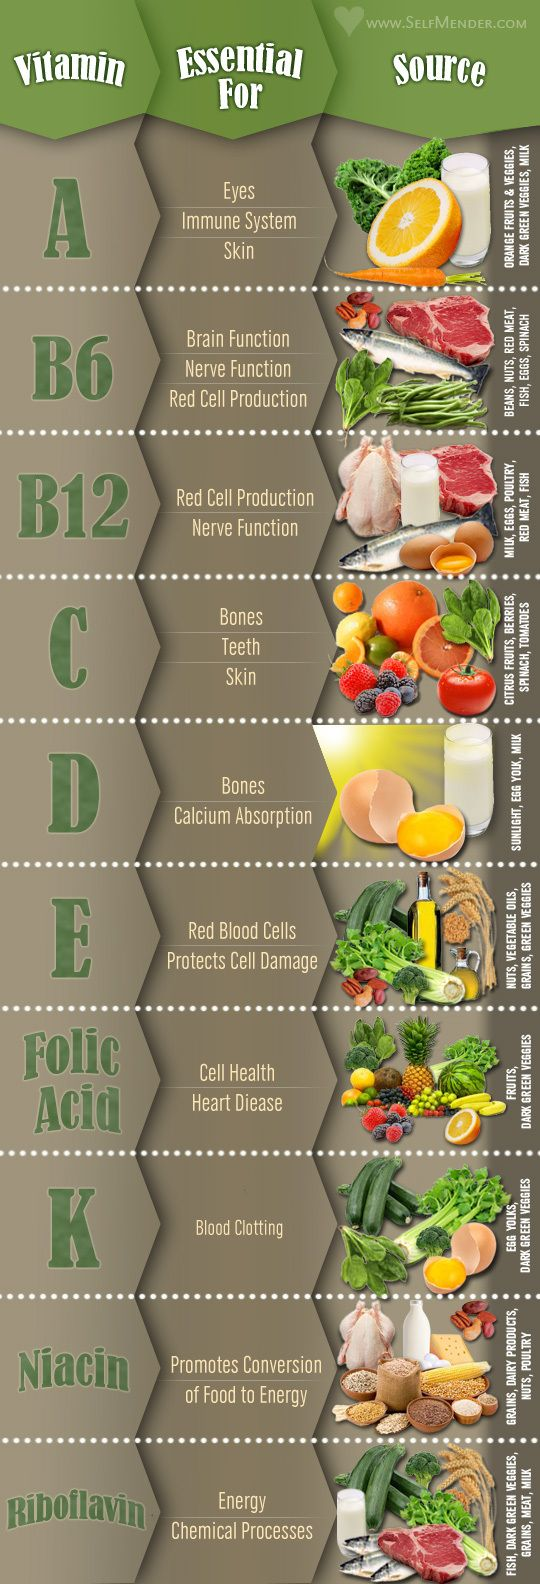 """Vitamin Chart Infographic (^.^) Thanks, Pinterest Pinners, for stopping by, viewing, re-pinning, & following my boards. Have a beautiful day! and """"Feel free to share on Pinterest..^..^#yummy #organicgardenandhomes #healthlifeinfo #healthyeating #gardening (^.^)♥♡♥♡♥"""